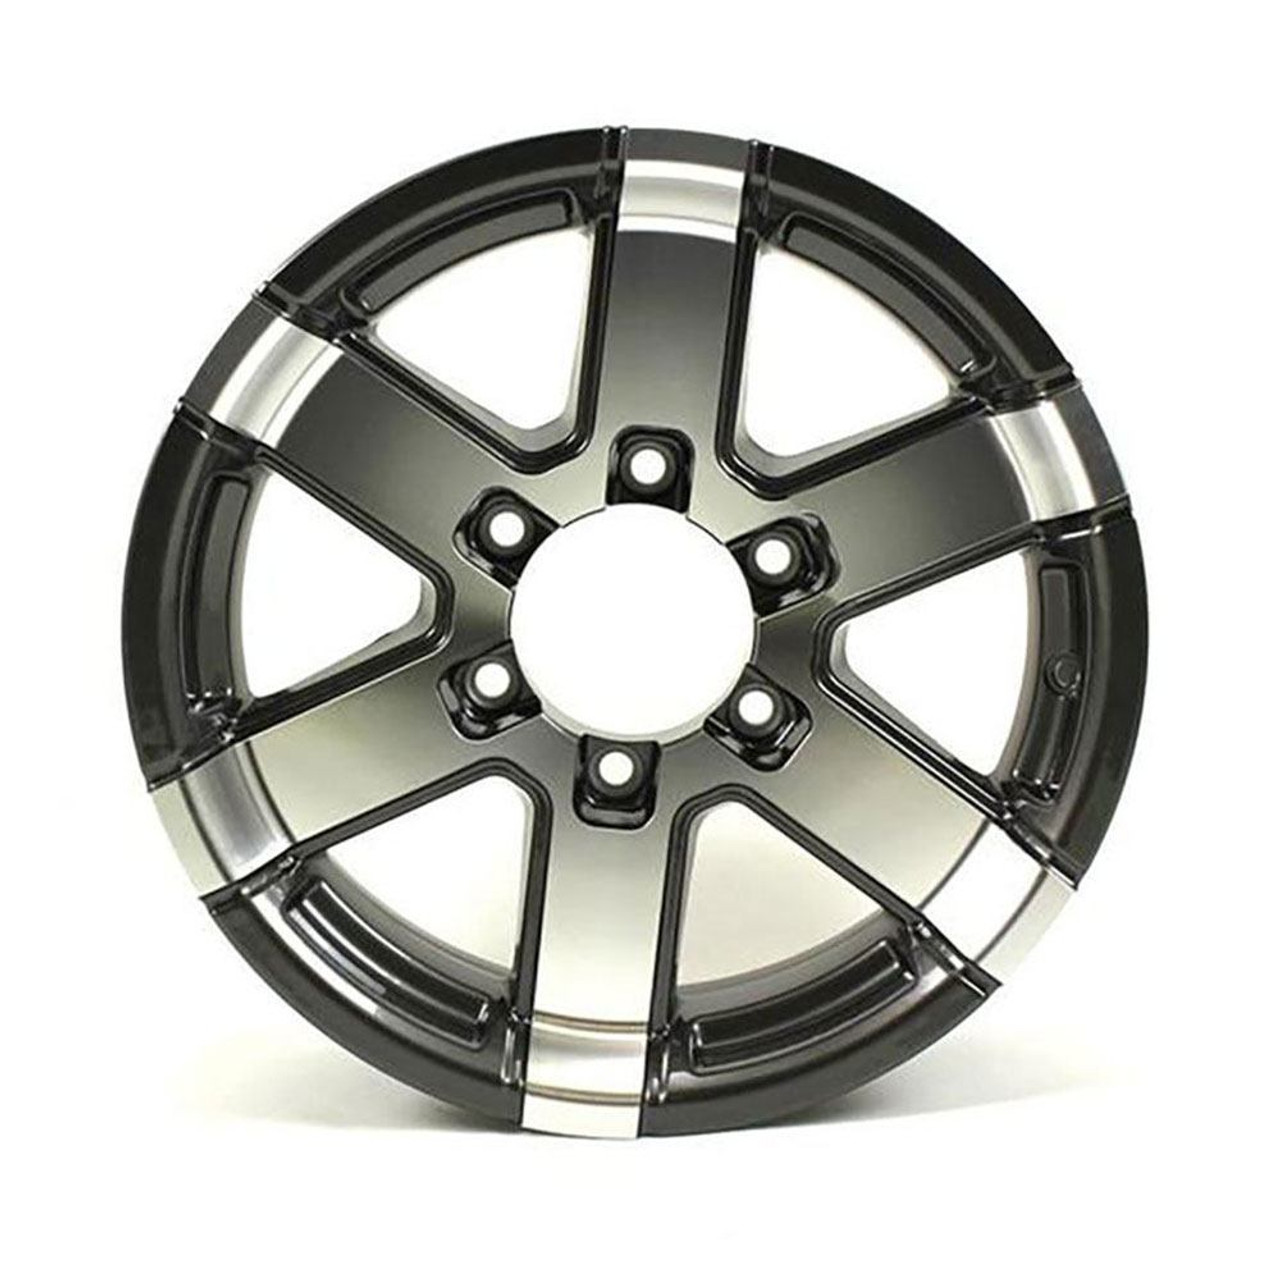 "16X6 6-Lug on 5.5"" Aluminum Series 07 Trailer Wheel - Gray Accent - 766655G"